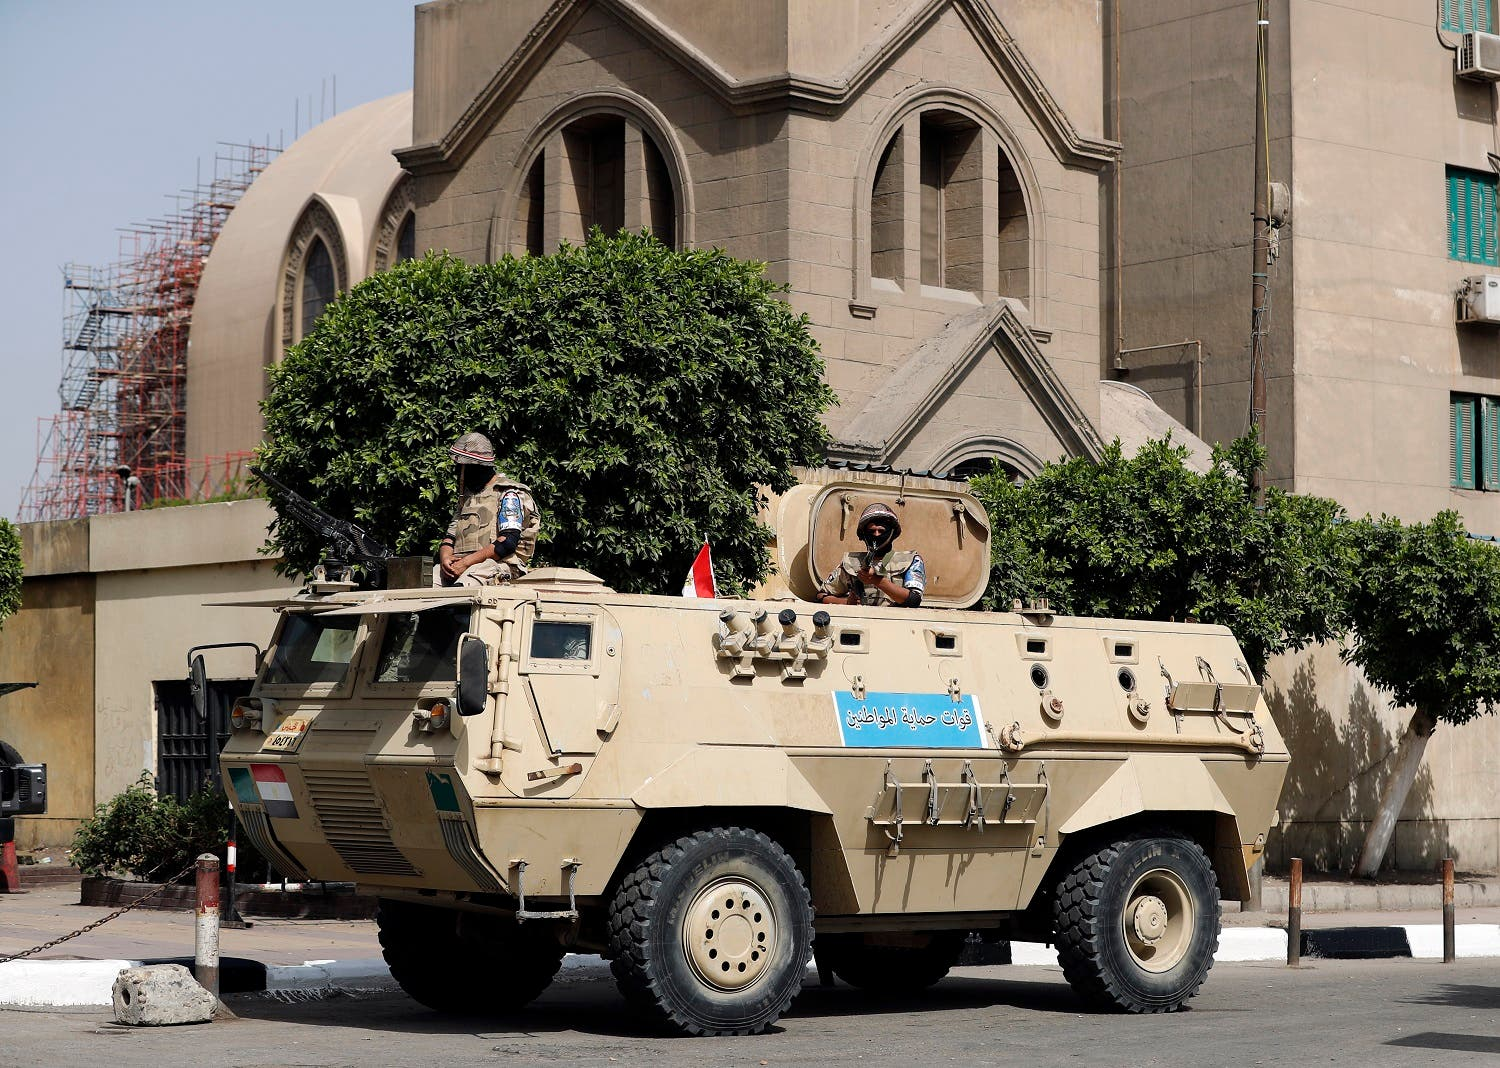 An Egyptian army vehicle stands guard outside Saint Mark's Coptic Orthodox Cathedral in central Cairo, a few hours before Pope Francis' visit commences on April 28, 2017. (AFP)